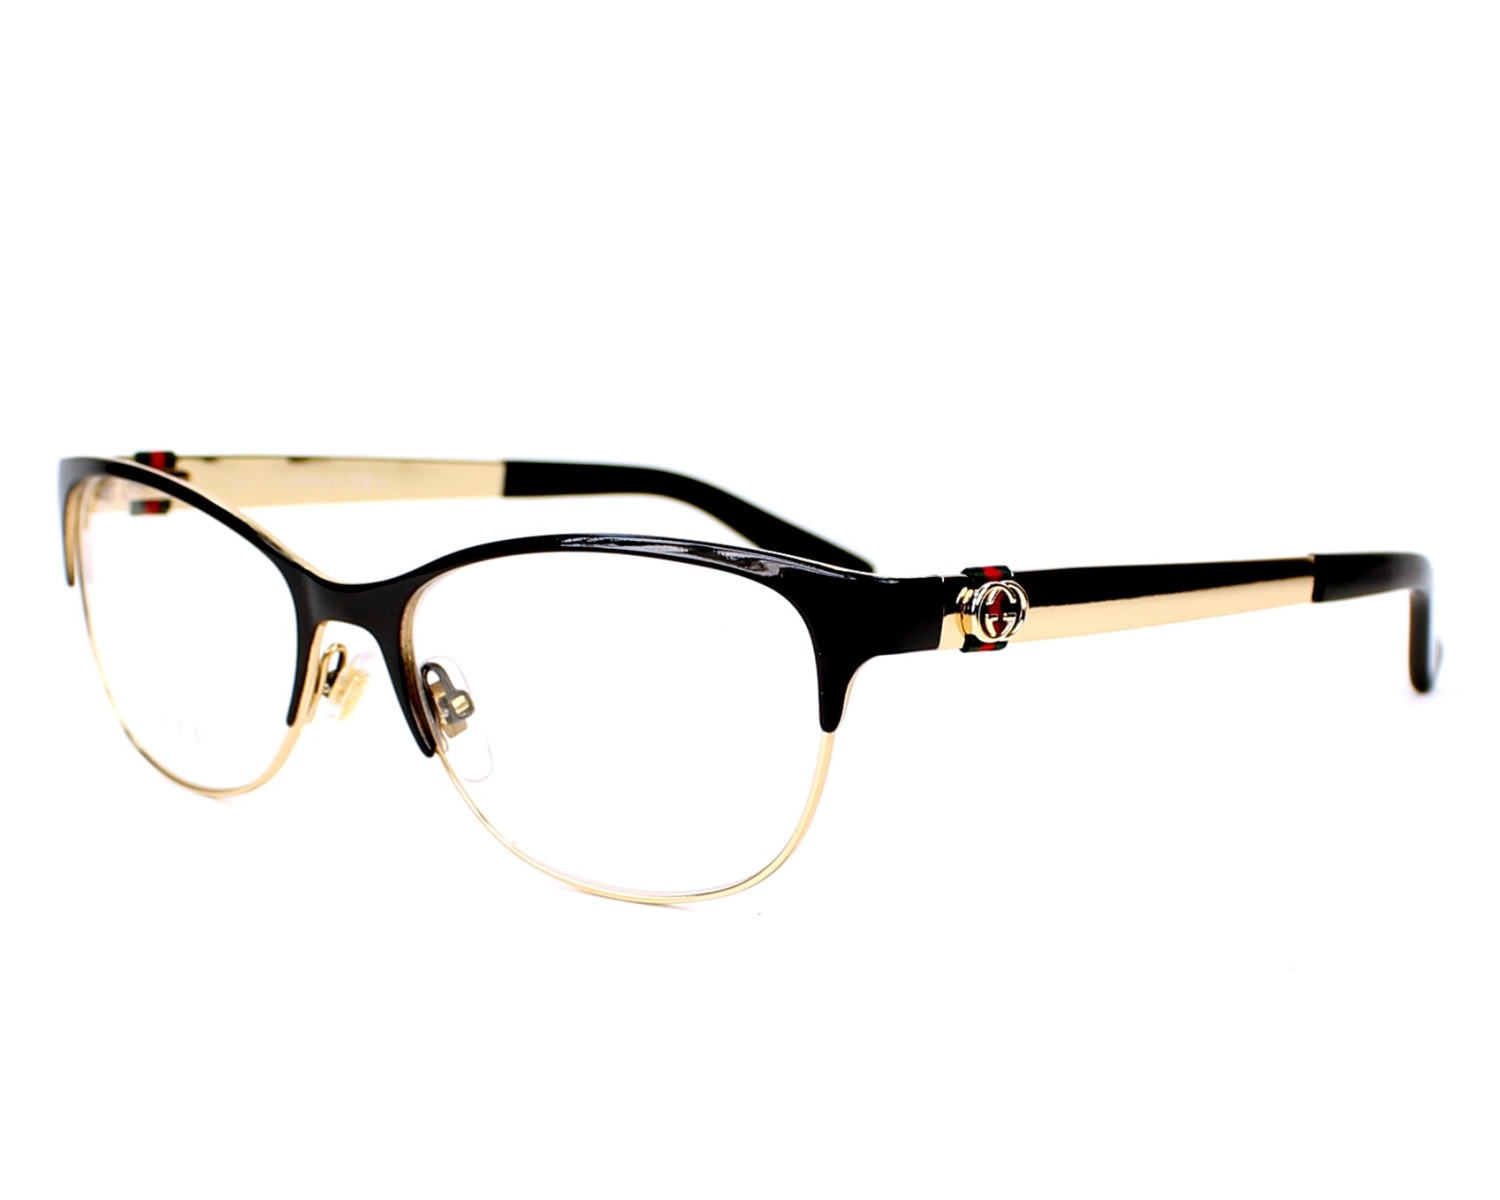 Gucci Wire Eyeglass Frames : Order your Gucci eyeglasses GG 4281 4Z6 53 today